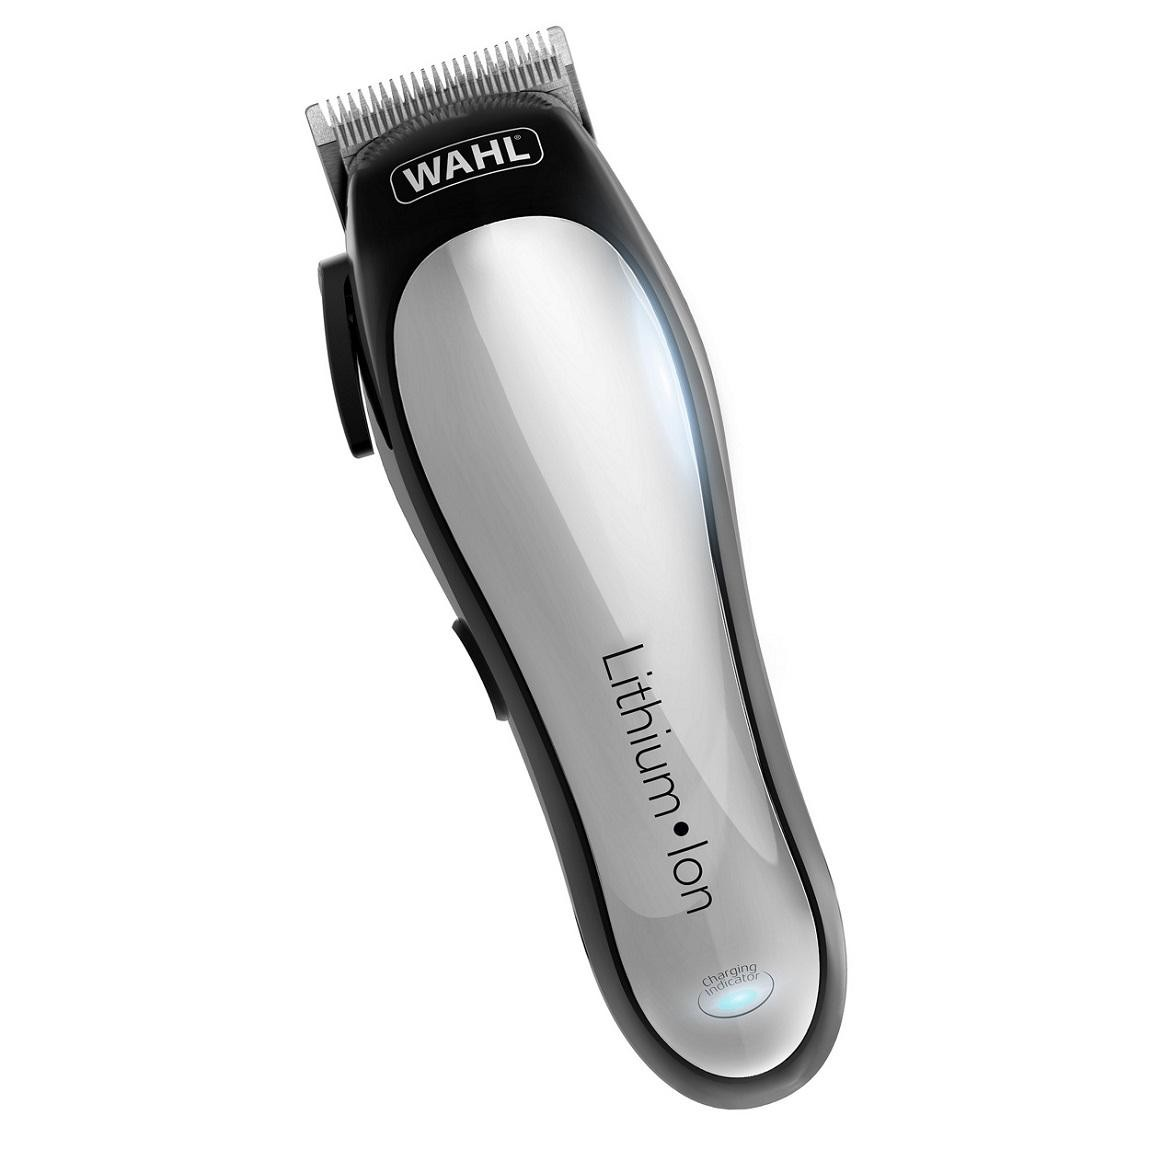 WAHL-79600-802-clippers.jpg